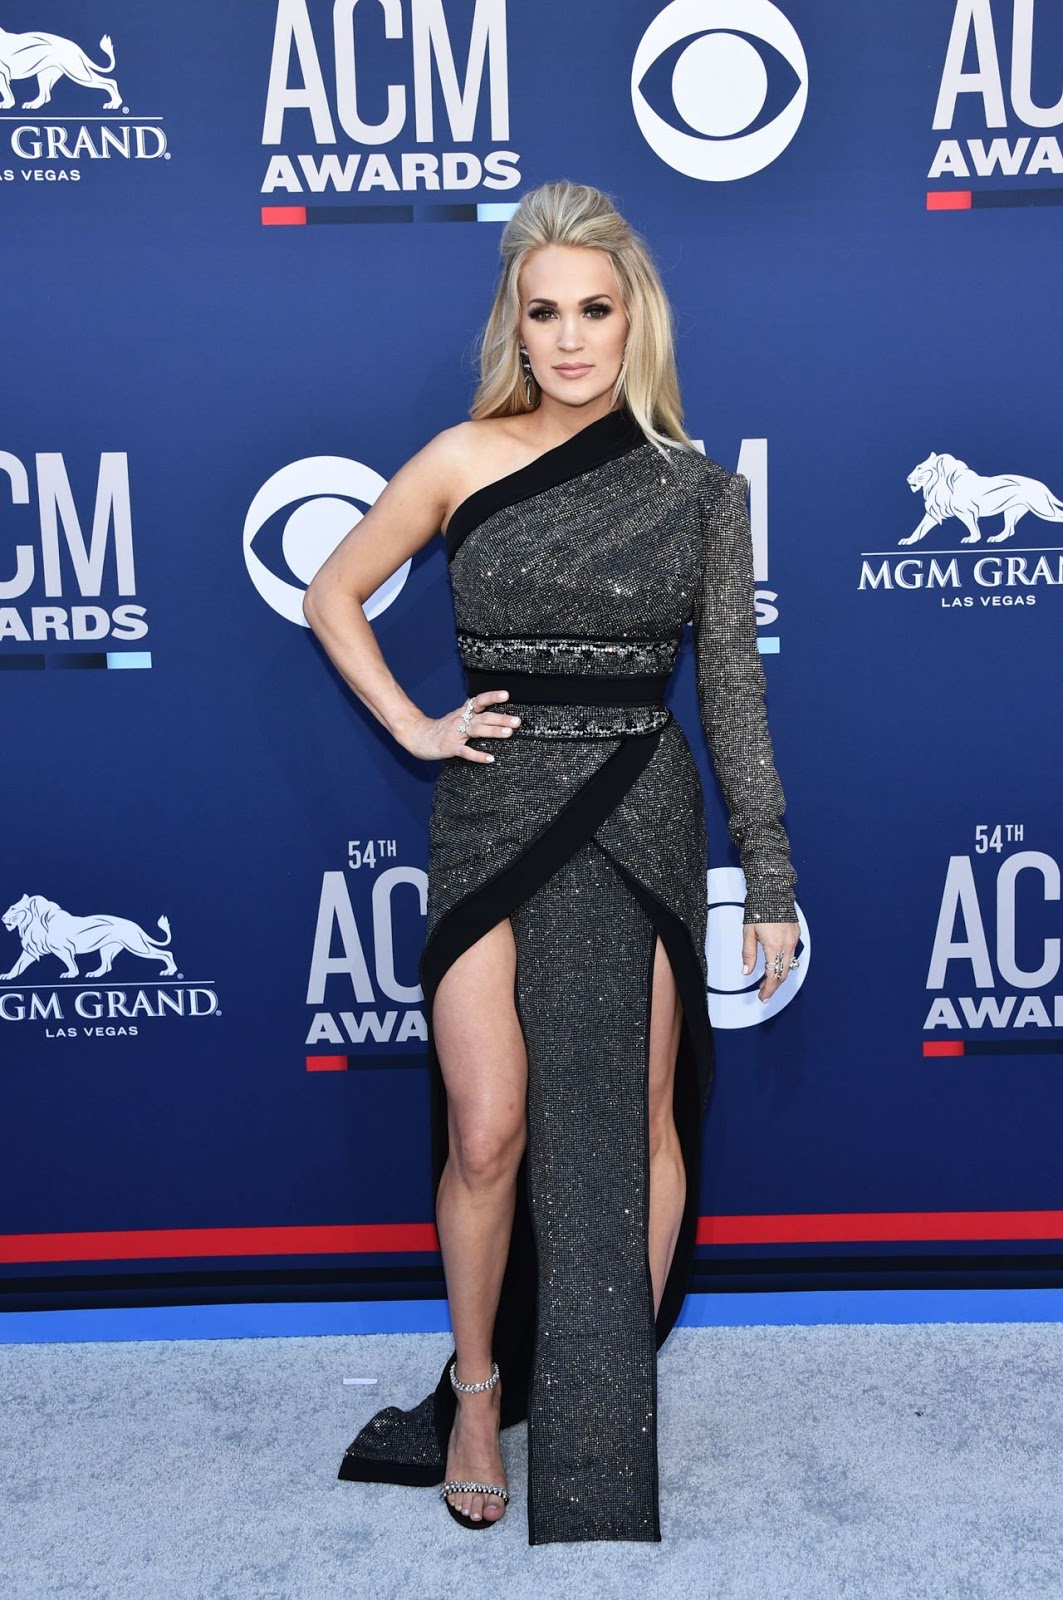 Carrie Underwood – 54th Annual ACM Awards at MGM Grand in Las Vegas